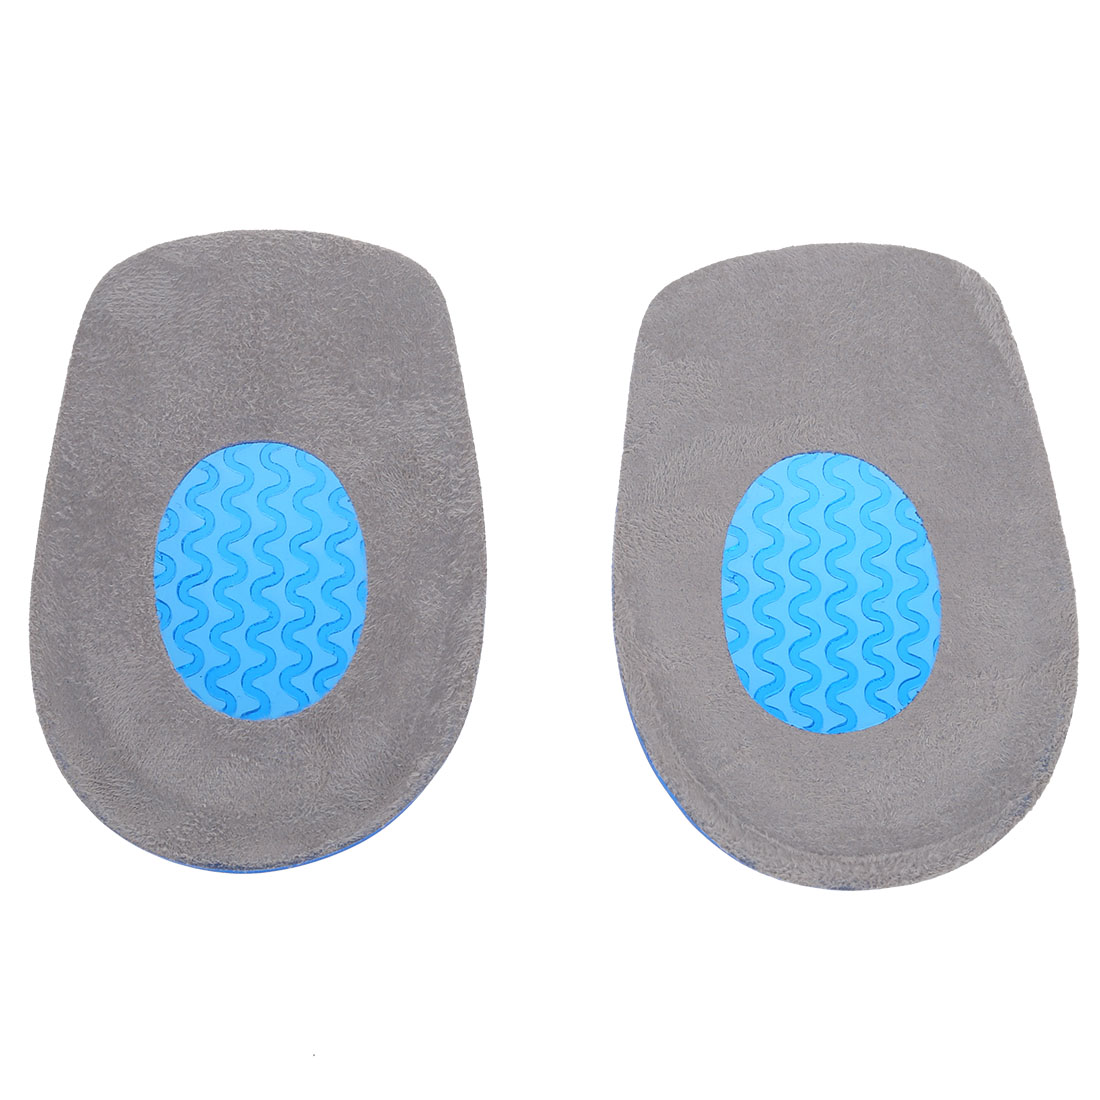 Hot-Stop Heel Pain - Gel Plantar Fasciitis Heel Cushion Support Pad for Shoes